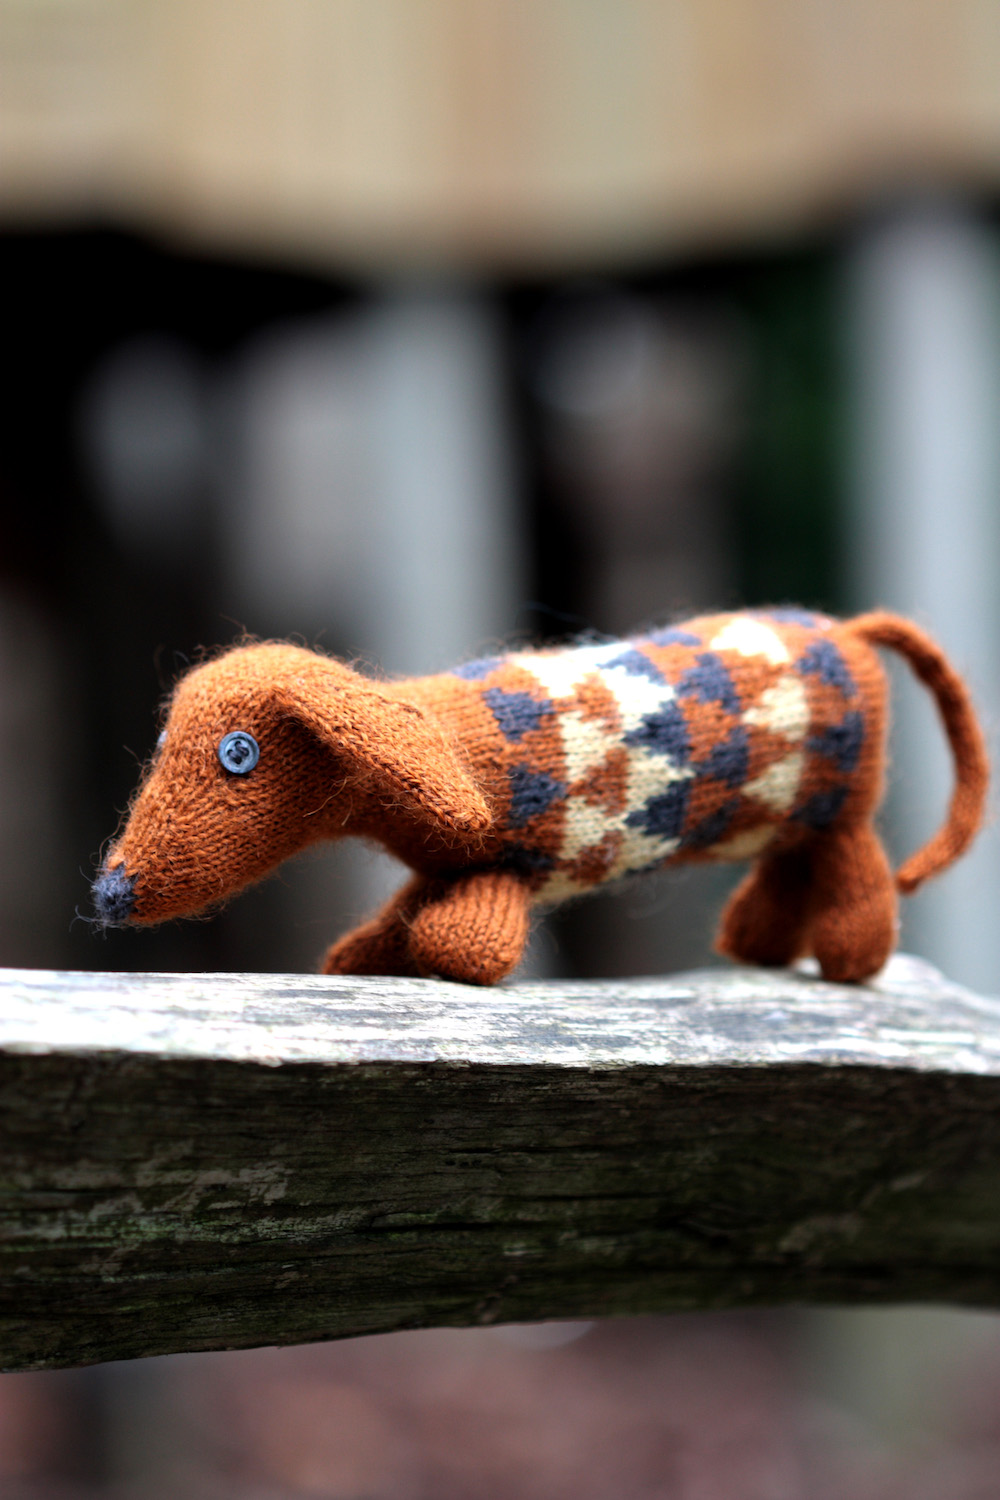 Dashing Dachshund by Ella Austin  Yarn: Baa Ram Ewe Titus (70% Wool, 30% Alpaca) 320m per 100g hank Kit includes: - Pattern leaflet - Mini hanks of Titus in colours Parkin, Filey and Coal - Toy stuffing - Tapestry needle for sewing up - 2 buttons for eyes You will also need: - 2mm DPNs - stitch marker Your finished dachshund will be about 22cm long and 9 cm tall.